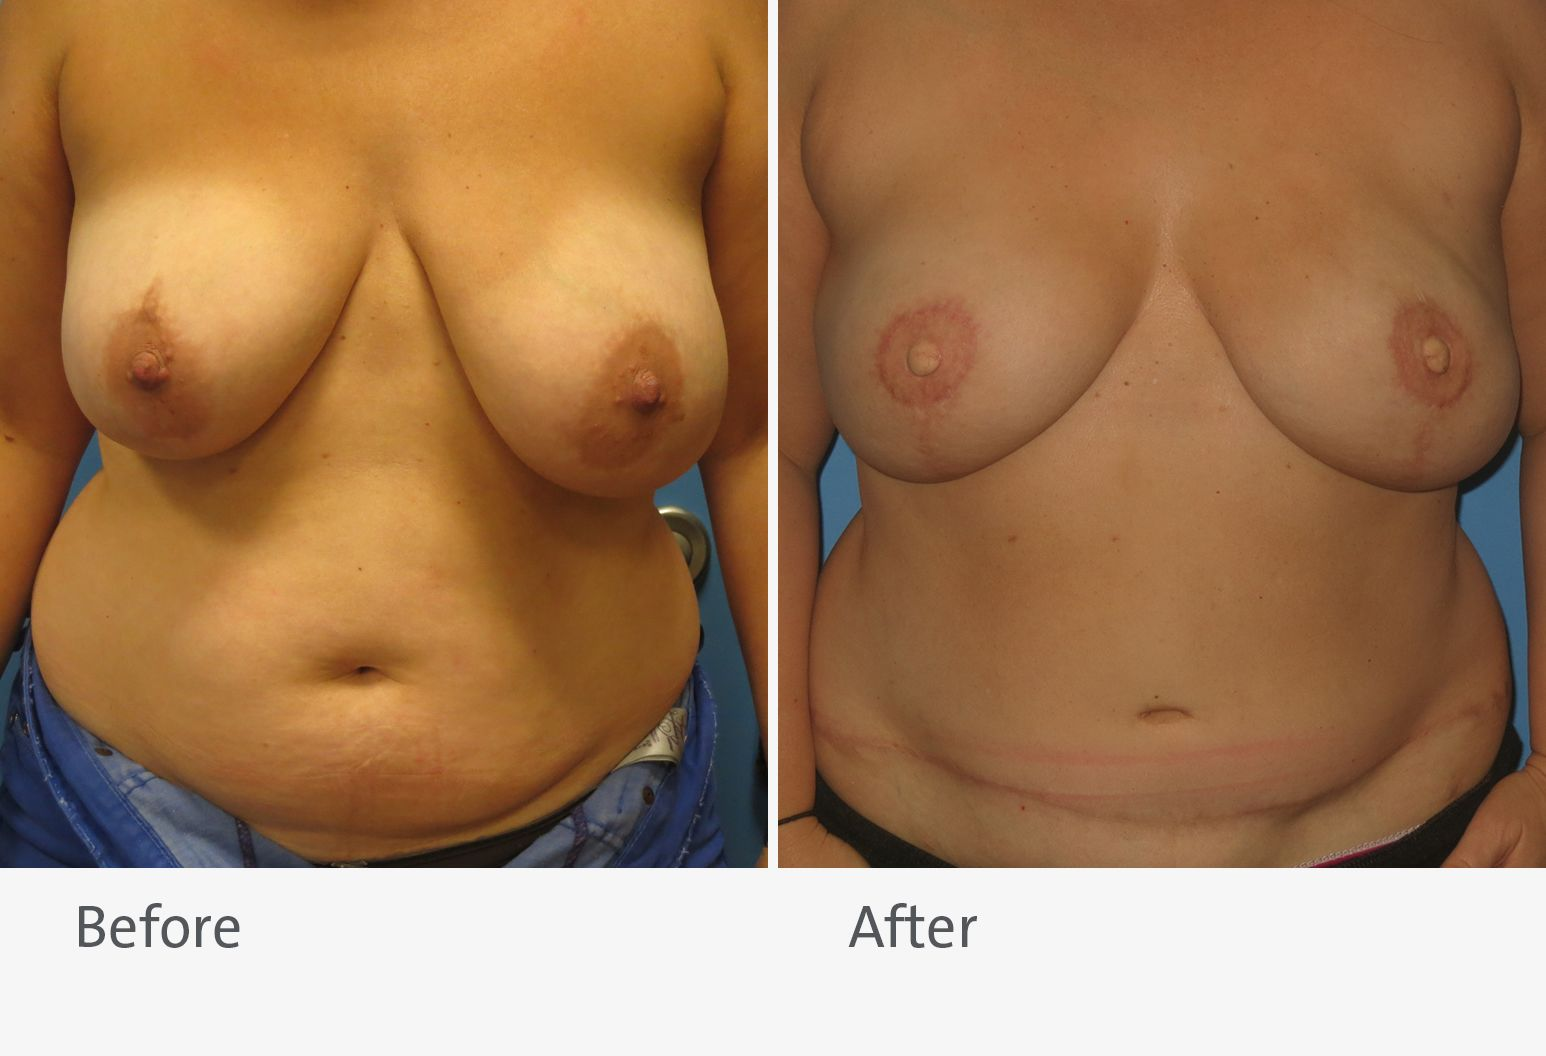 A patient is shown before and after breast reconstruction with a DIEP flap. On the left is the patient before the surgery with slightly uneven breasts, and on the right is the patient after surgery with smaller, more even breasts.